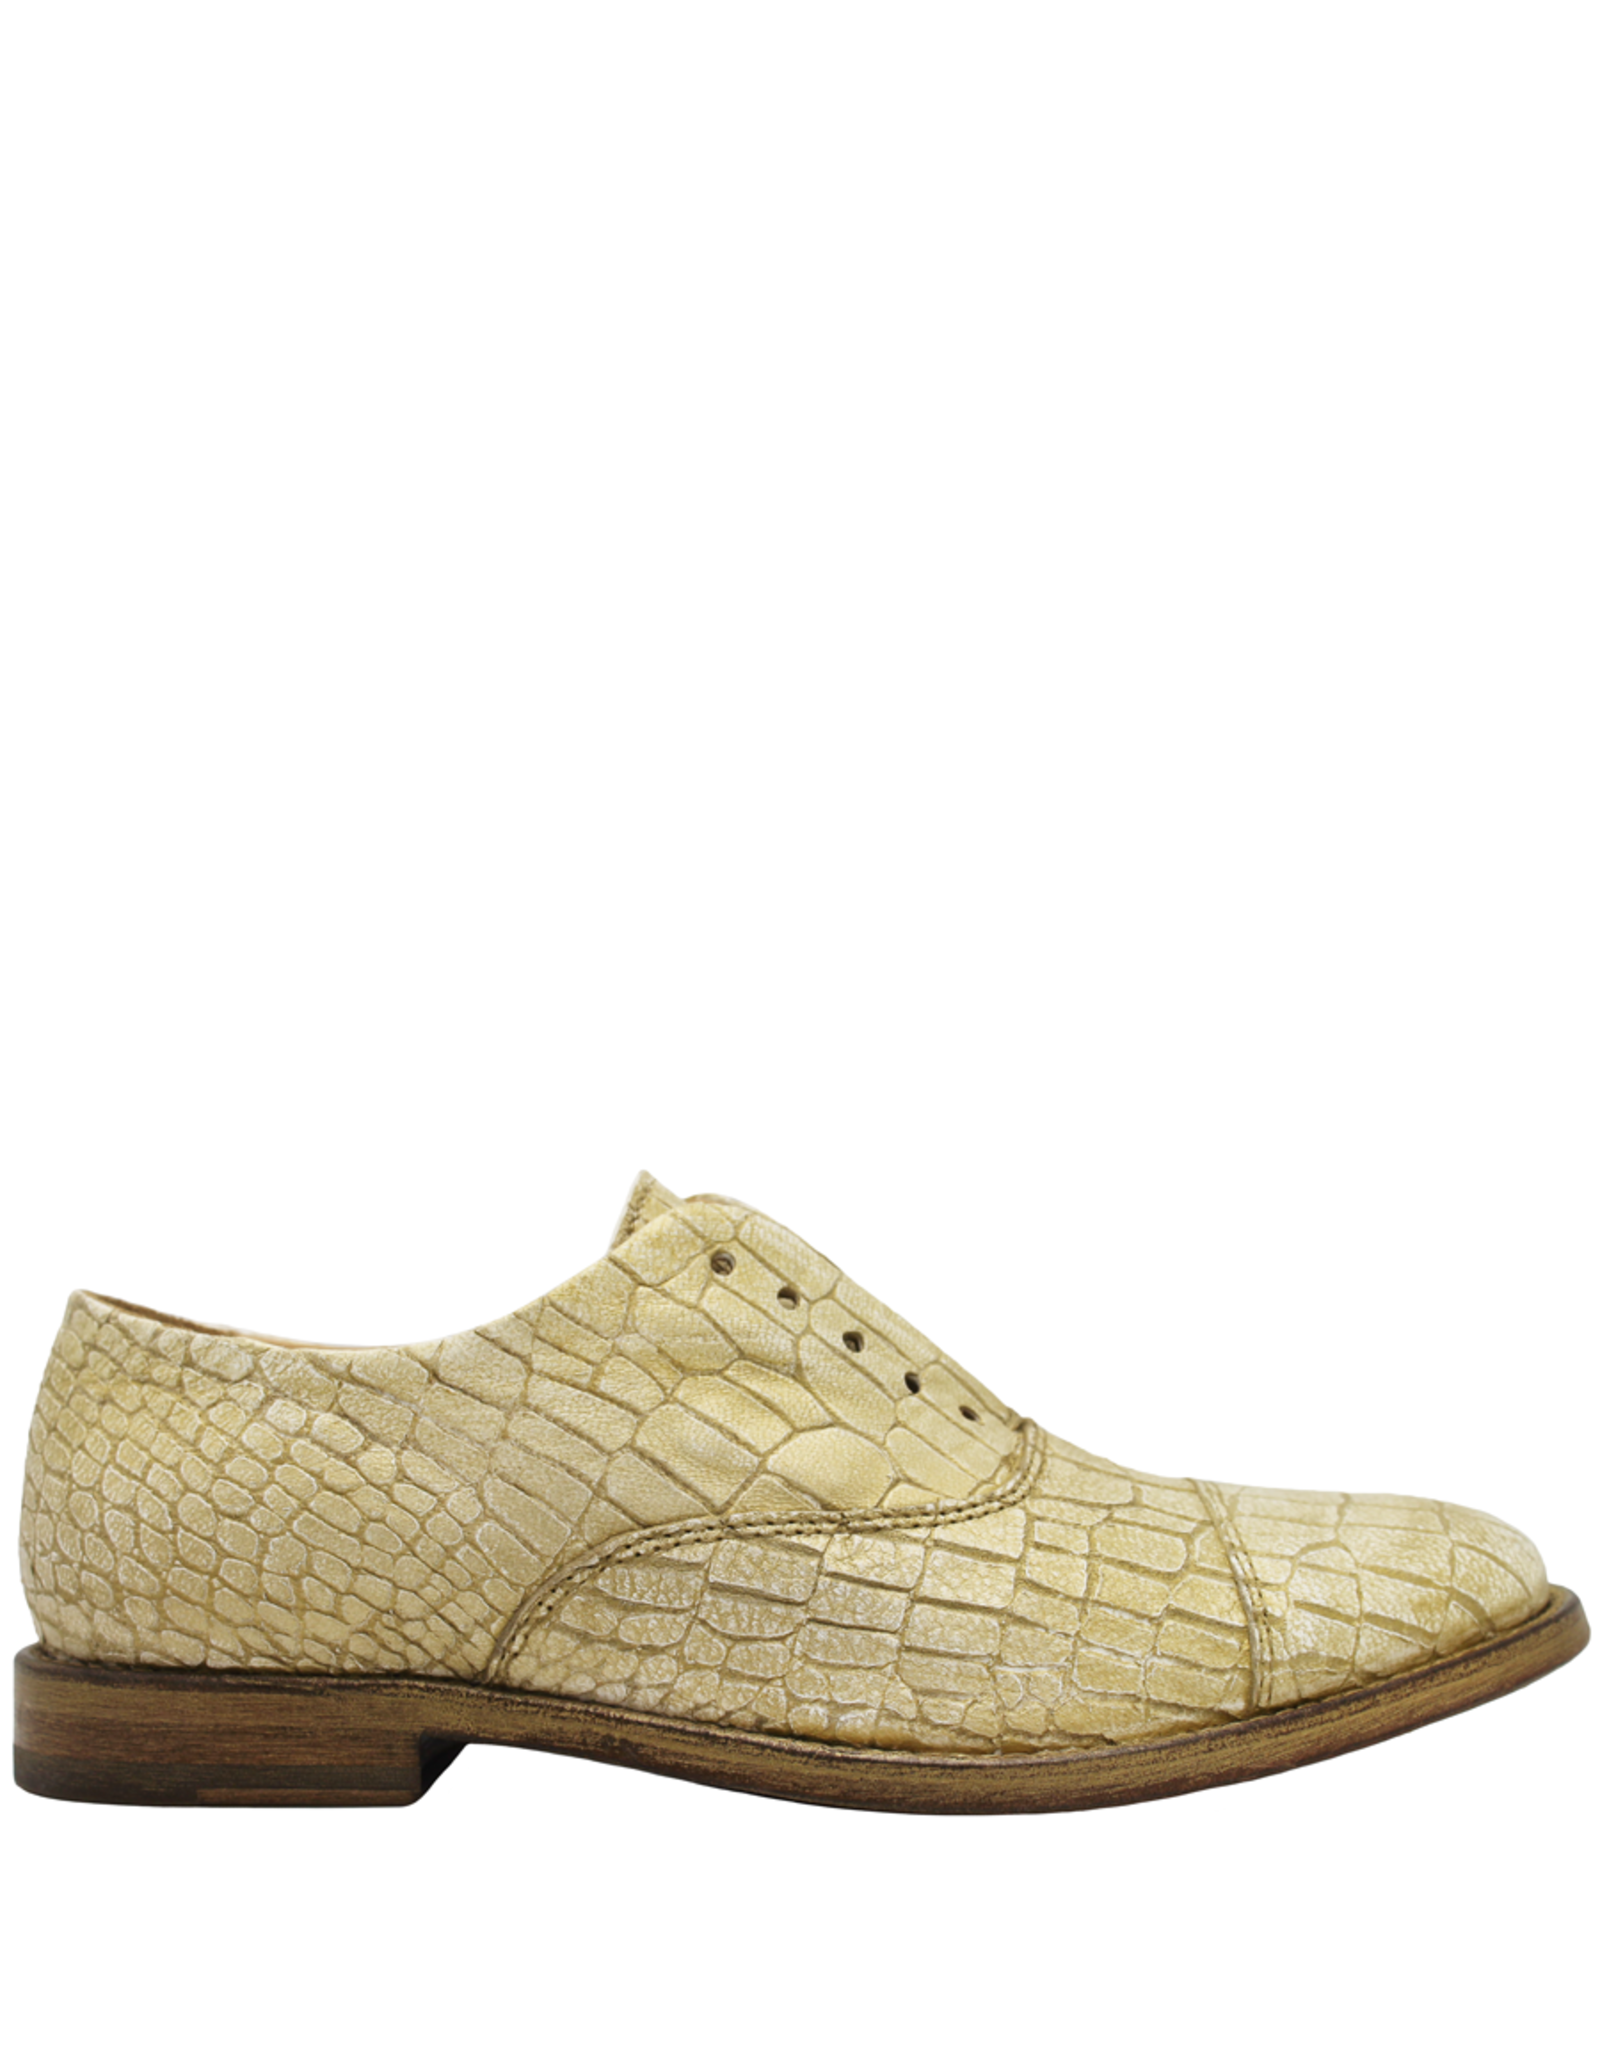 Moma Moma Gold Wash Croco Enbossed Calf No Lace Oxford 9091